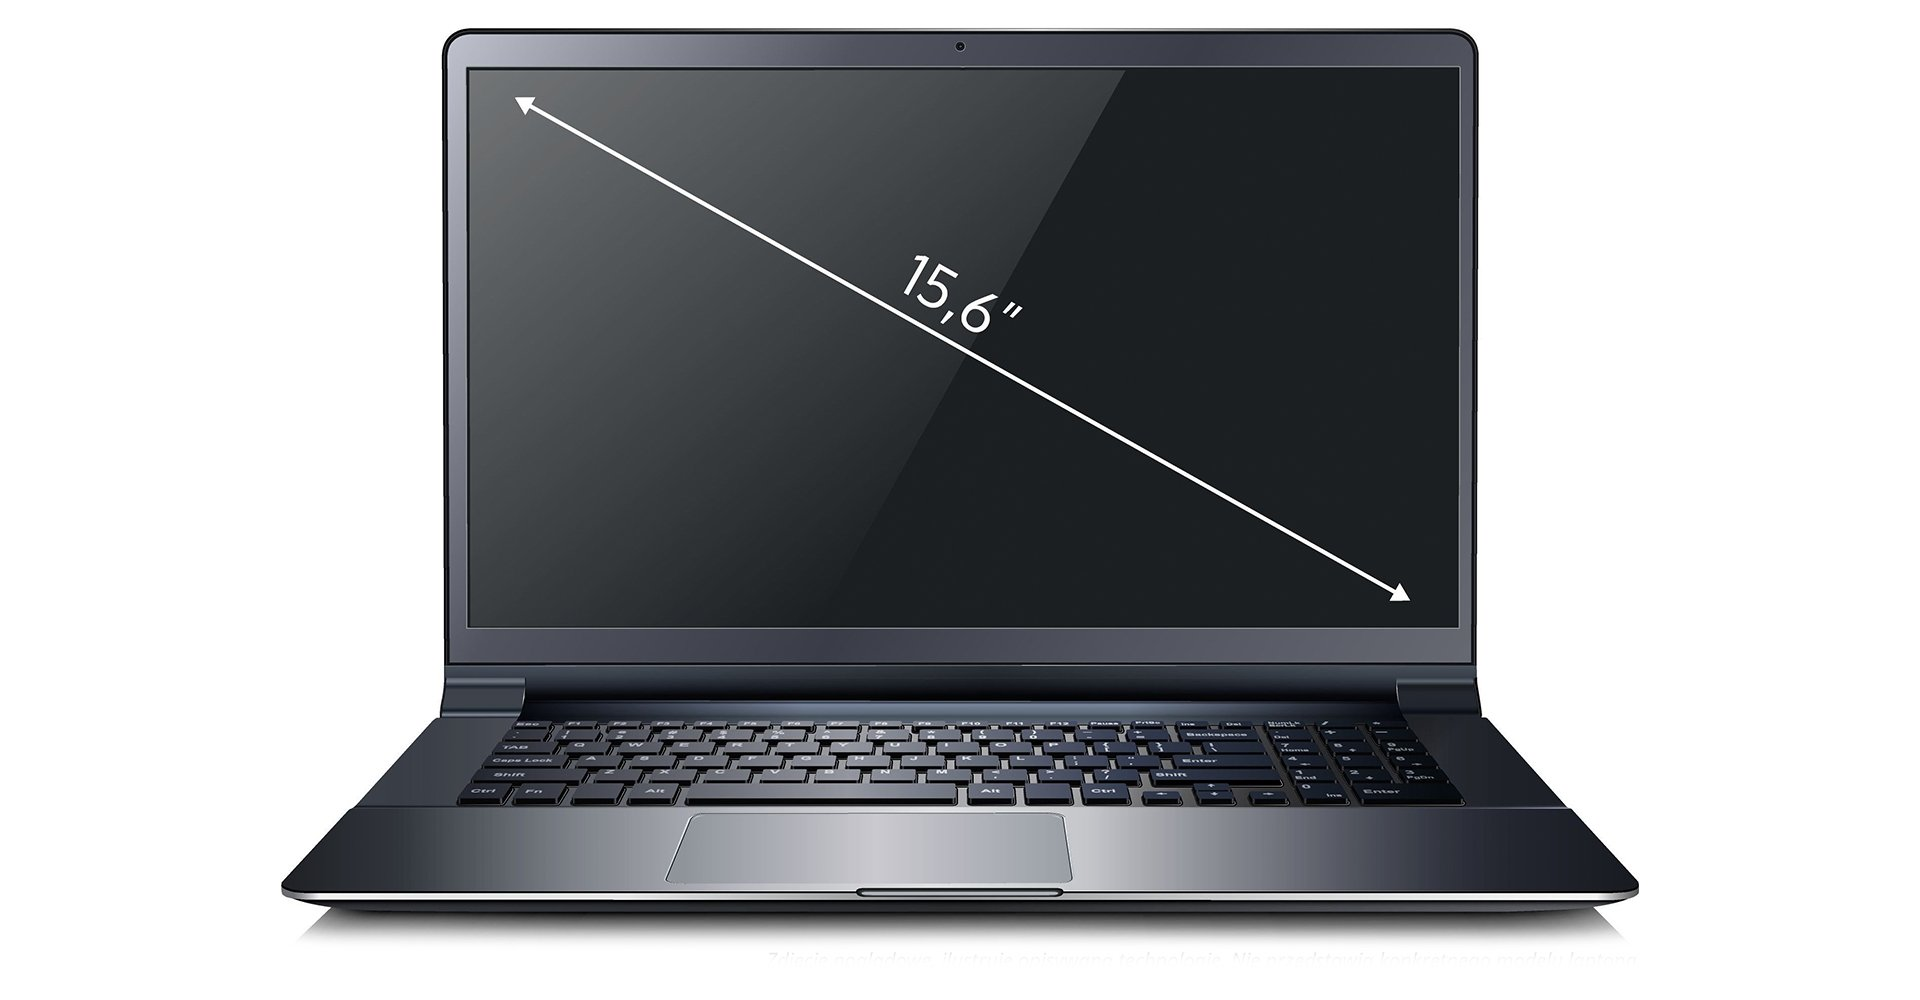 Dell Vostro I3-6006U 8GB 256GB Win10Home                             Диагональ 15.6 дюйма